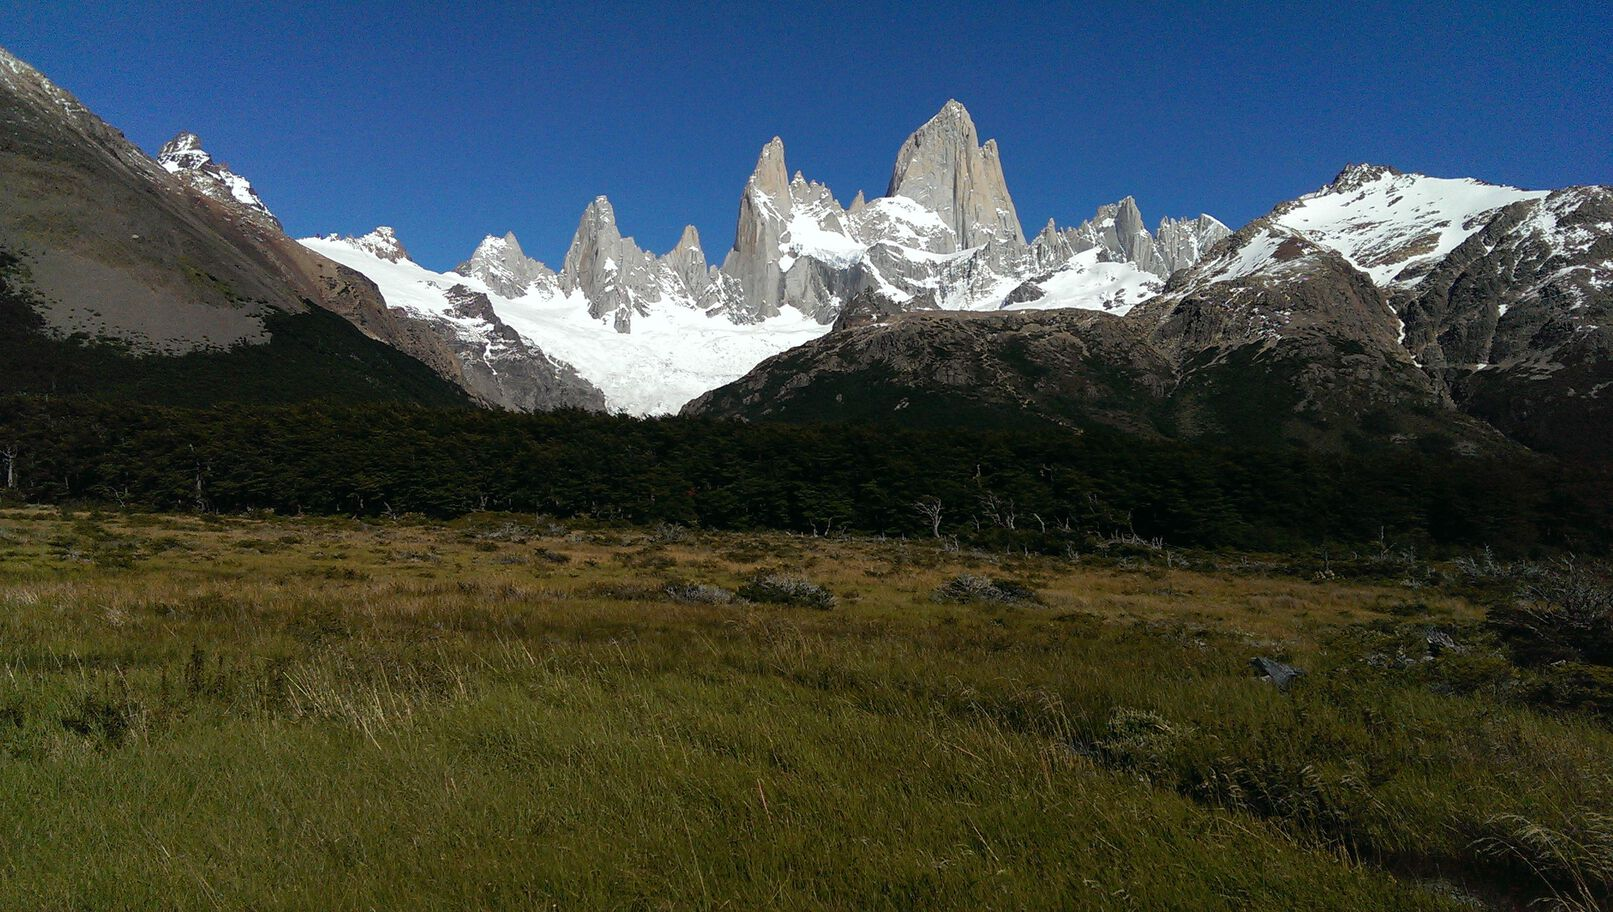 Fitz Roy from a distance